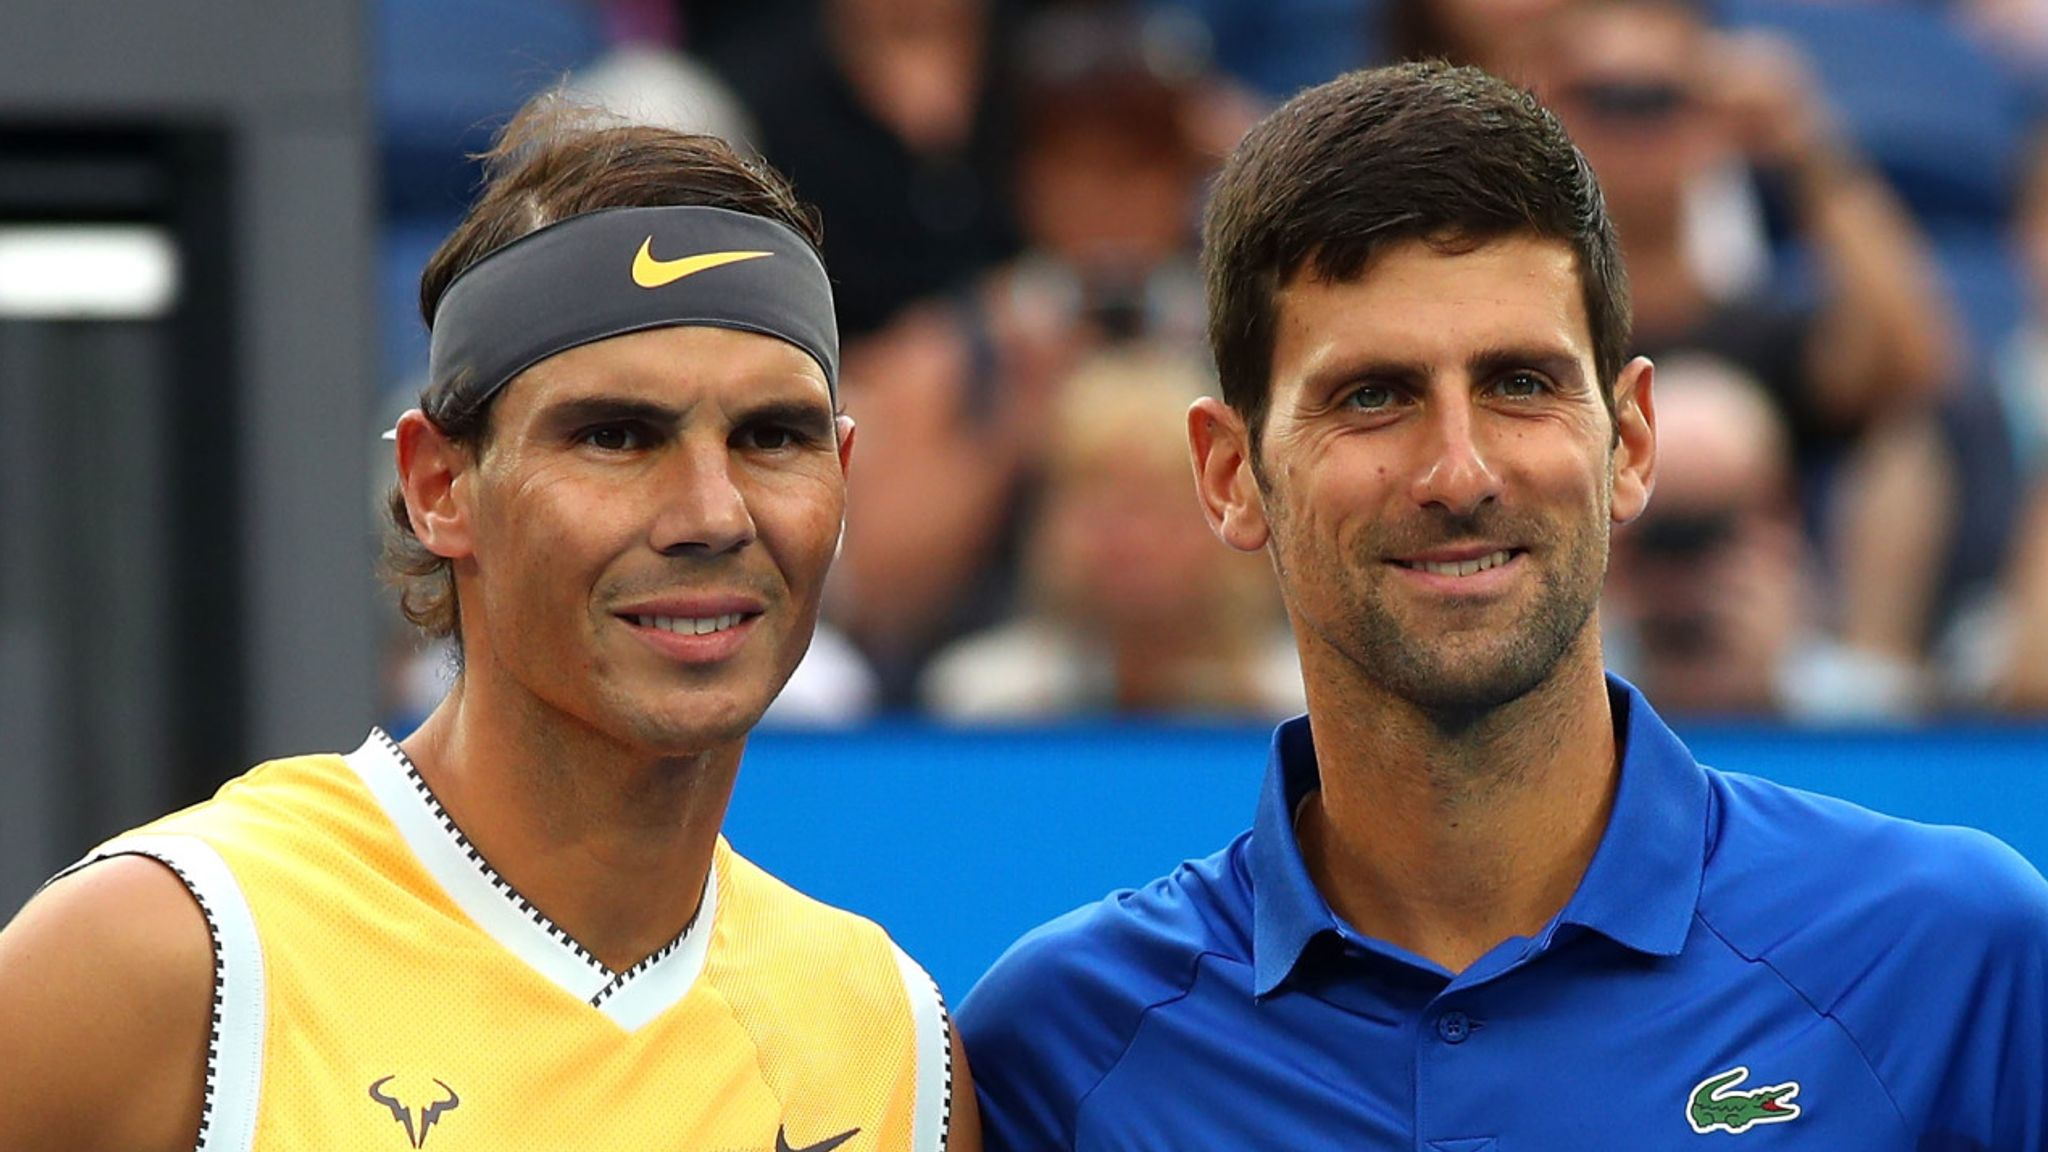 Rafael Nadal Insists Novak Djokovic Will Need A Covid 19 Vaccination To Play On The Atp Tour Tennis News Sky Sports